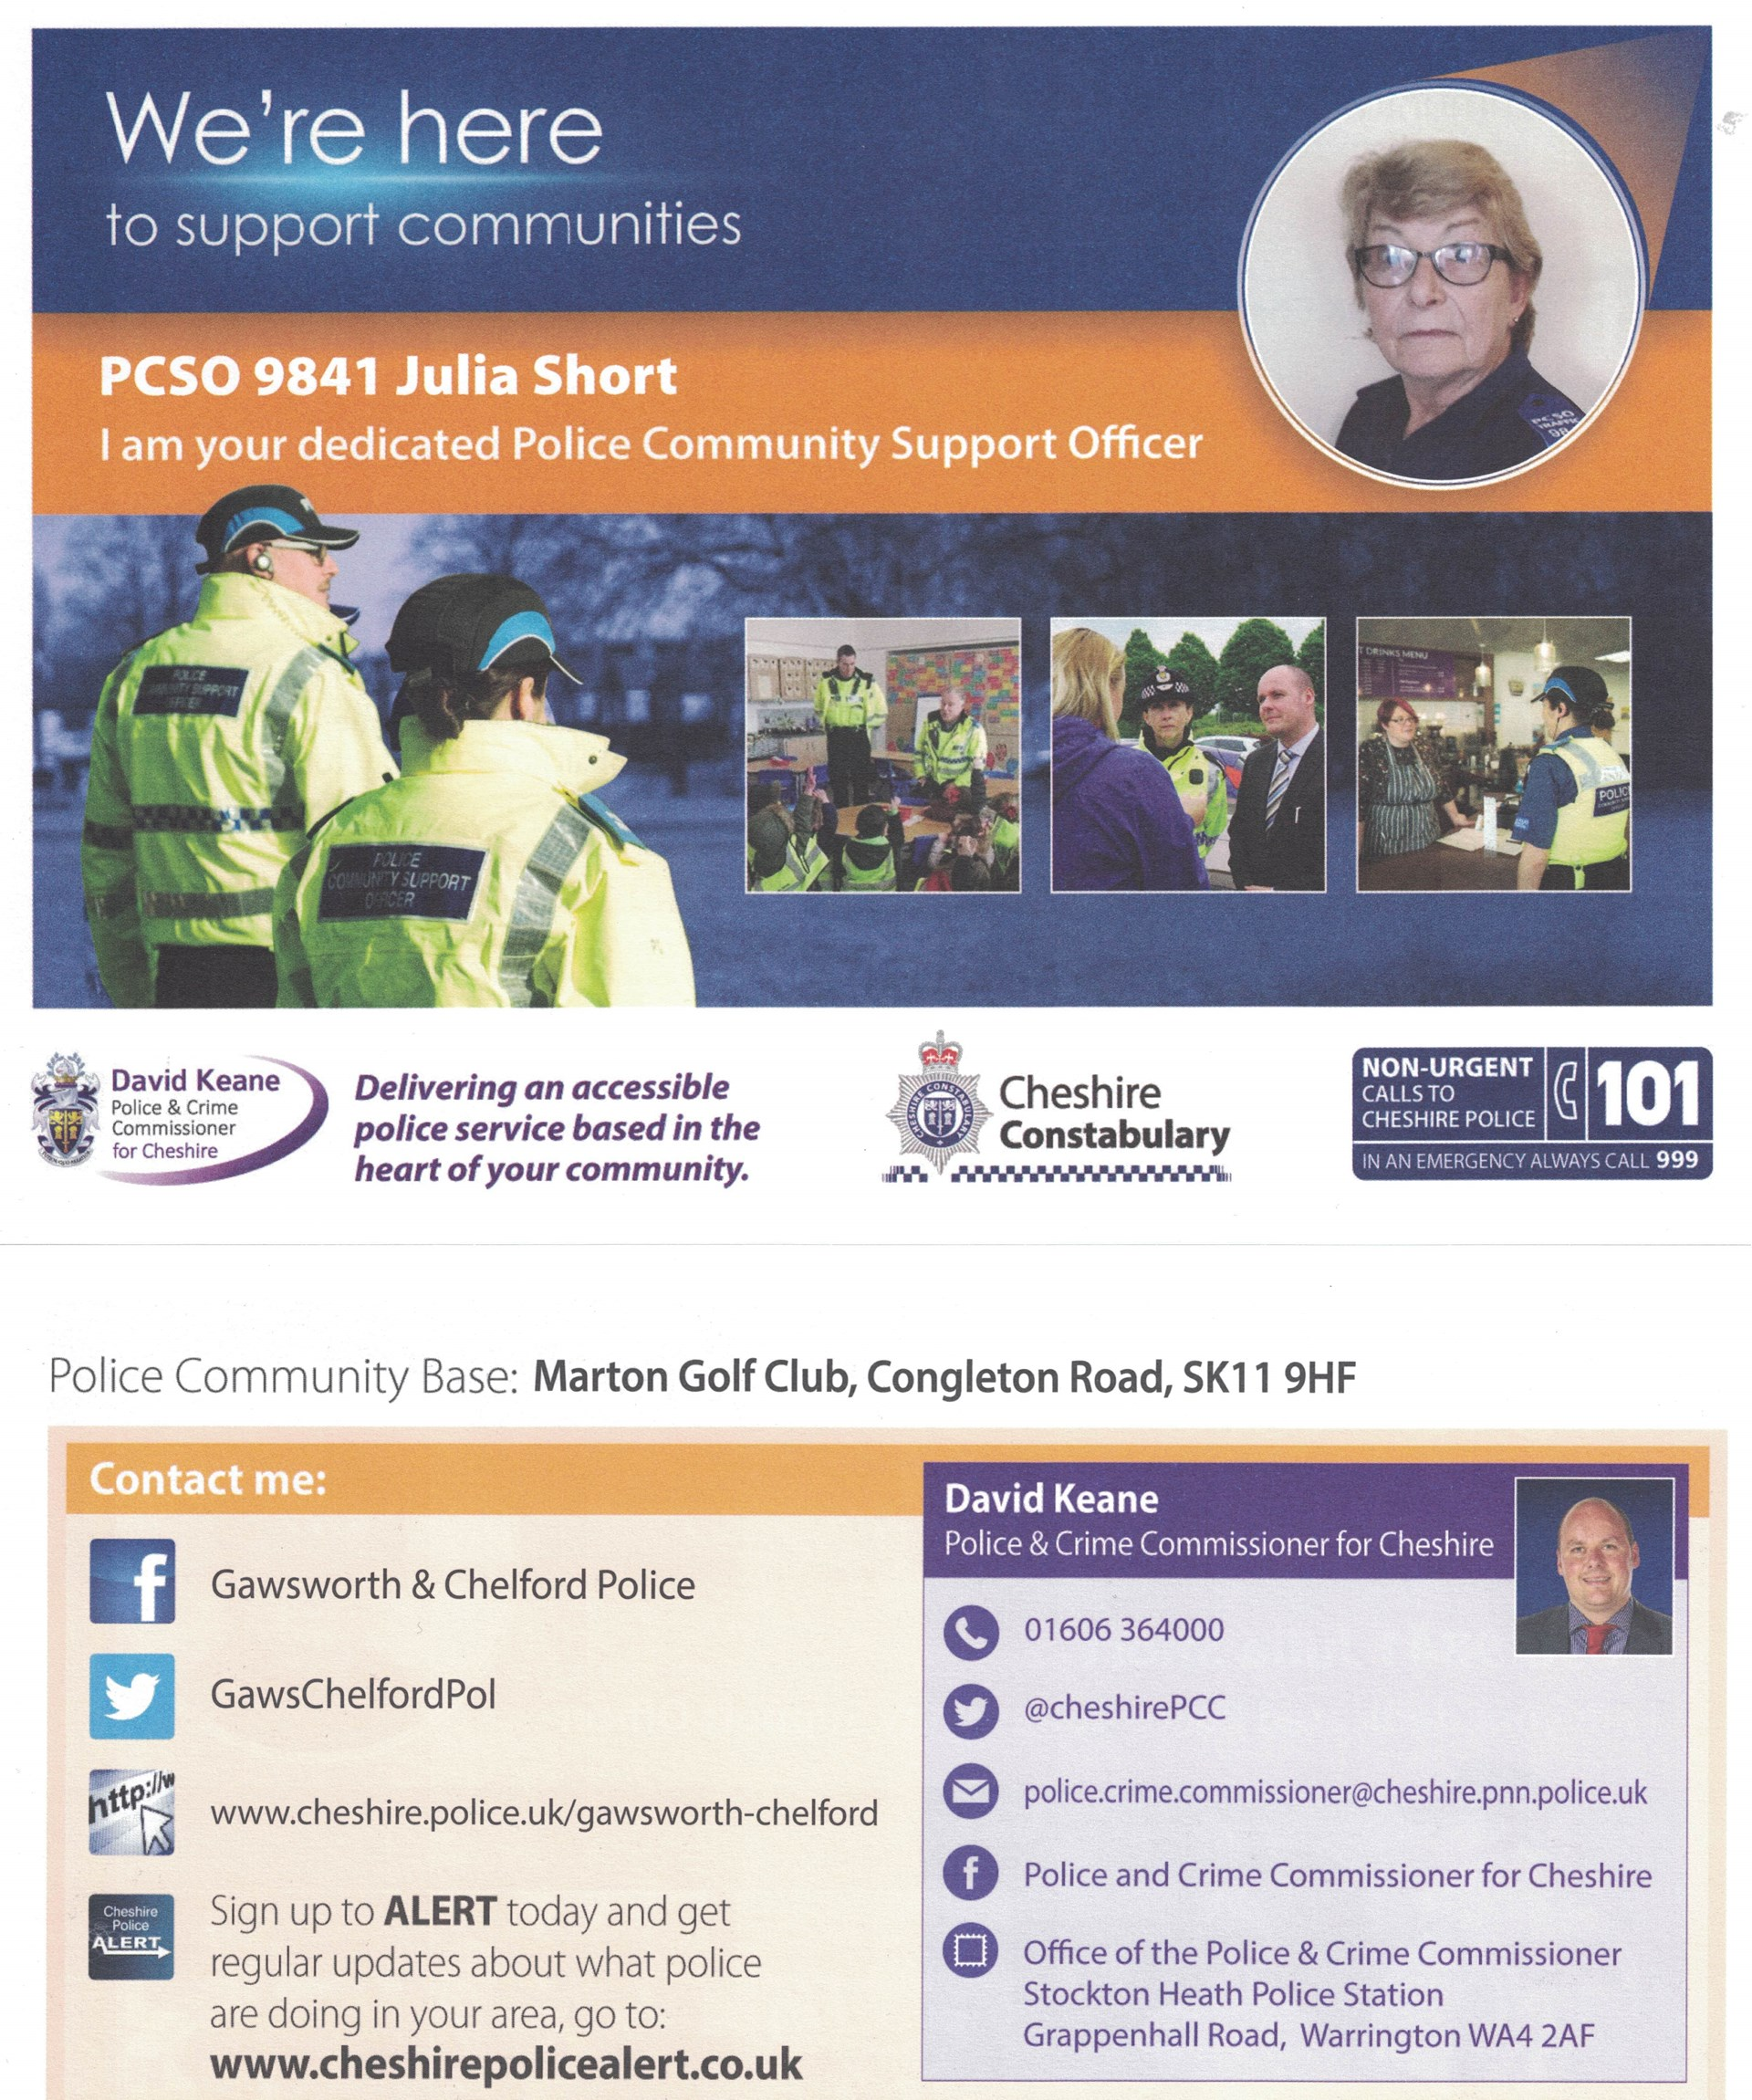 Chelford Parish Council Local Policing Team Contact Details